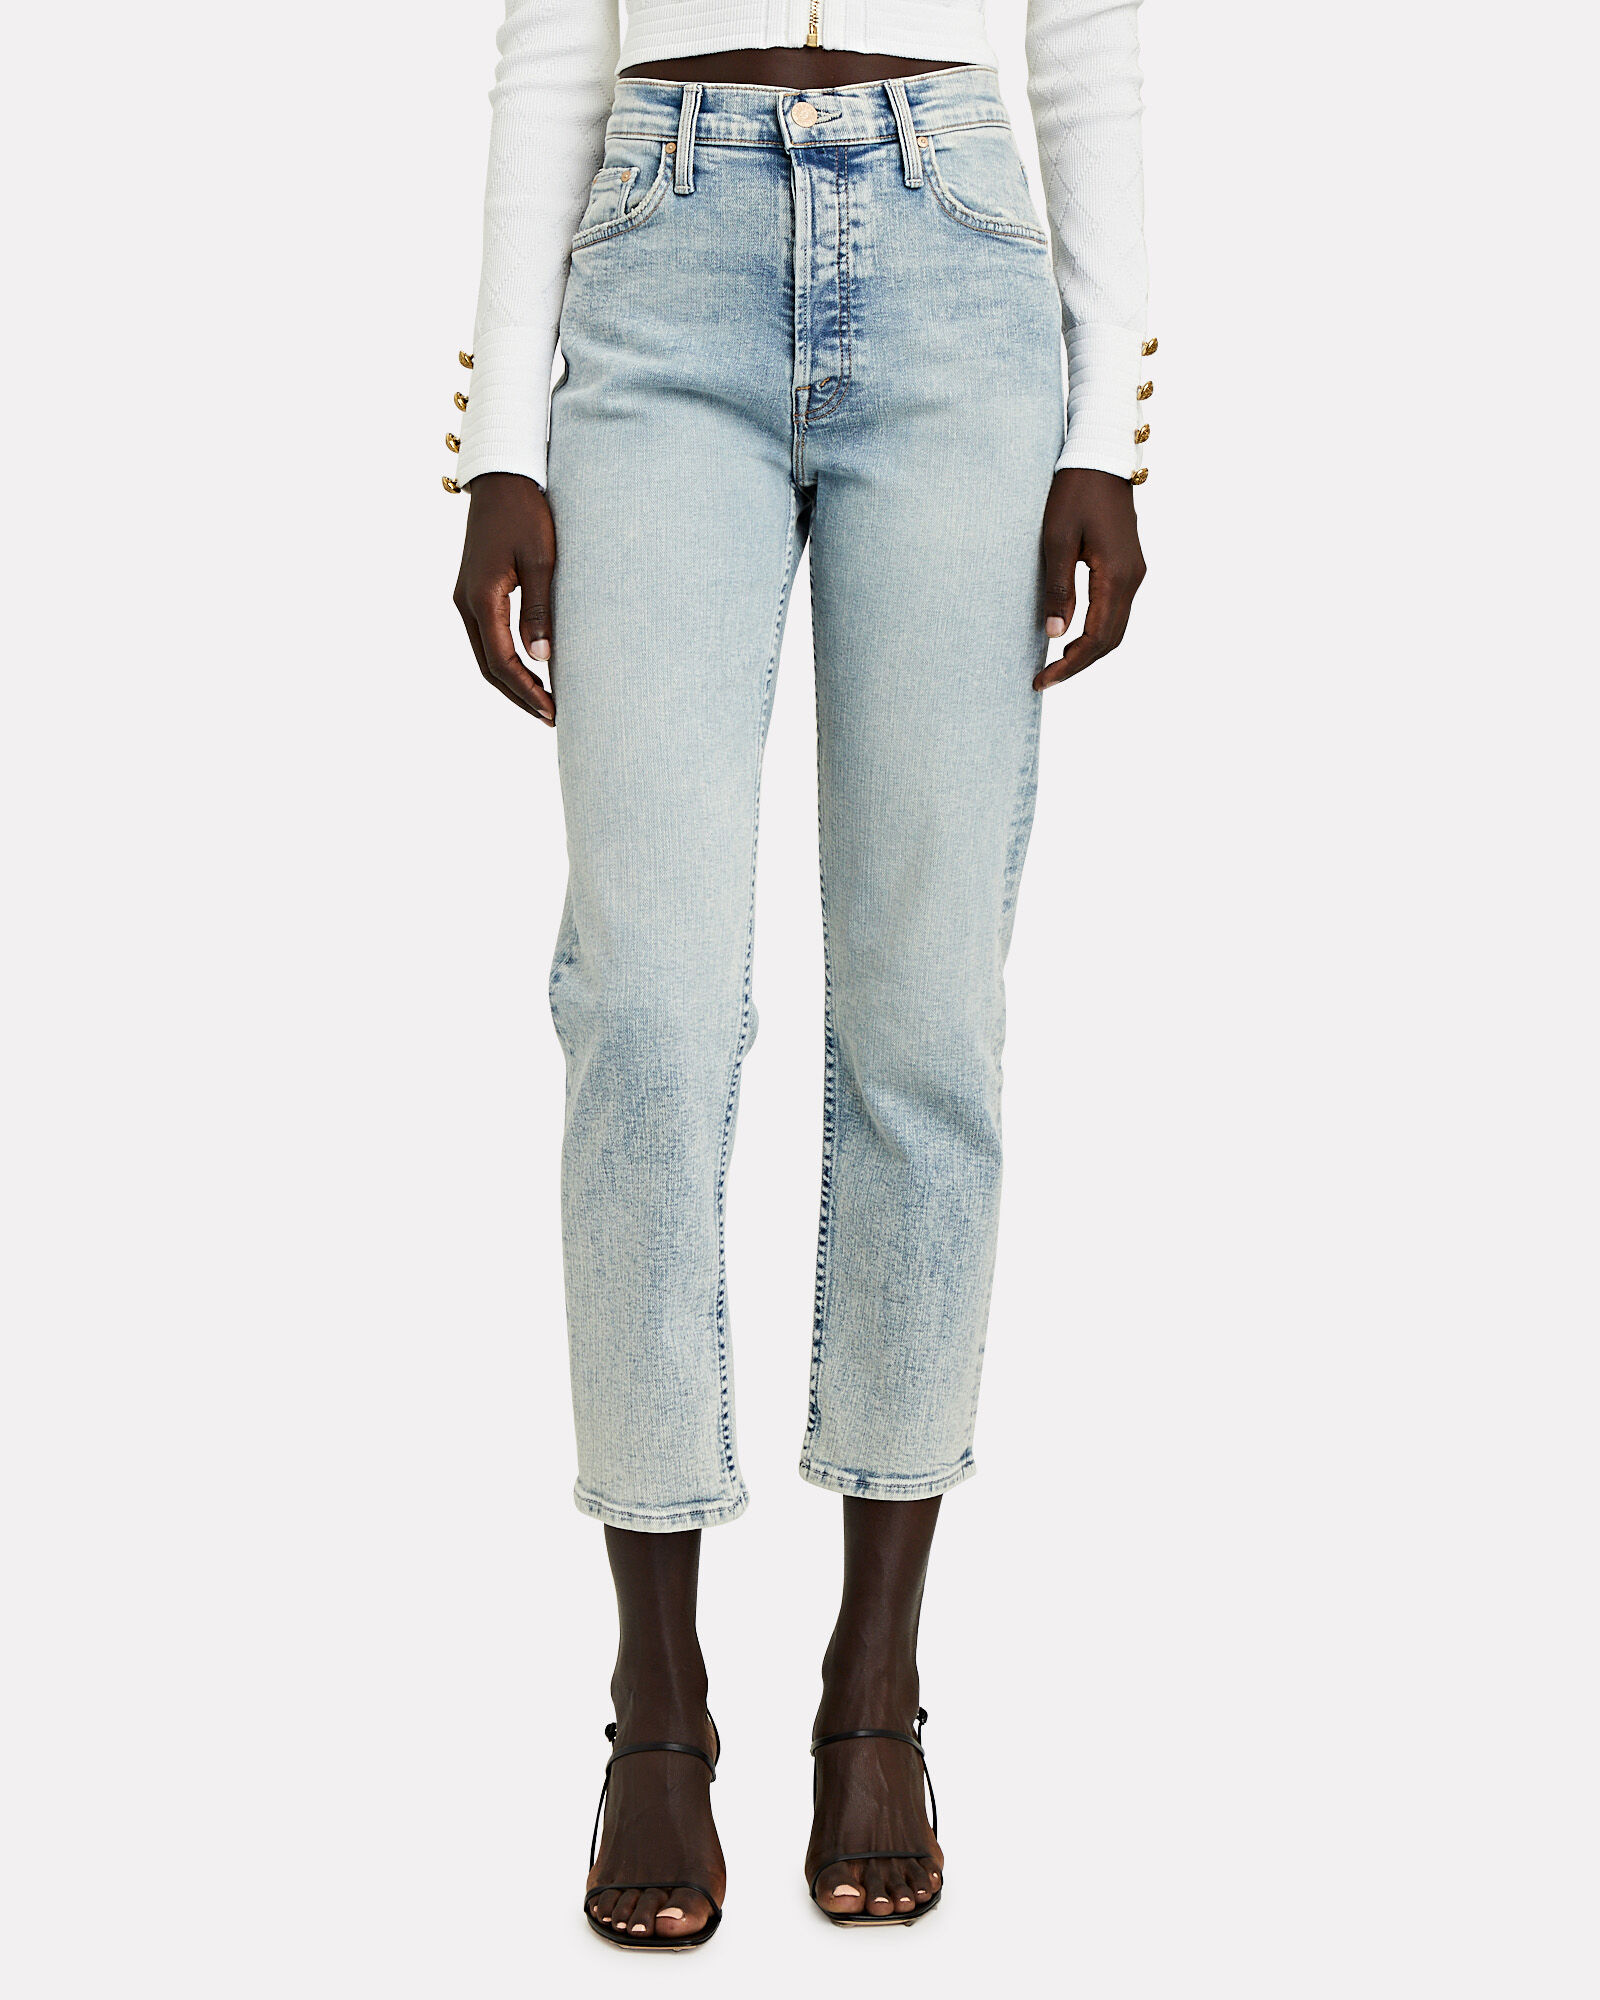 Tomcat High-Rise Cropped Jeans, MARAKESH DAYS, hi-res